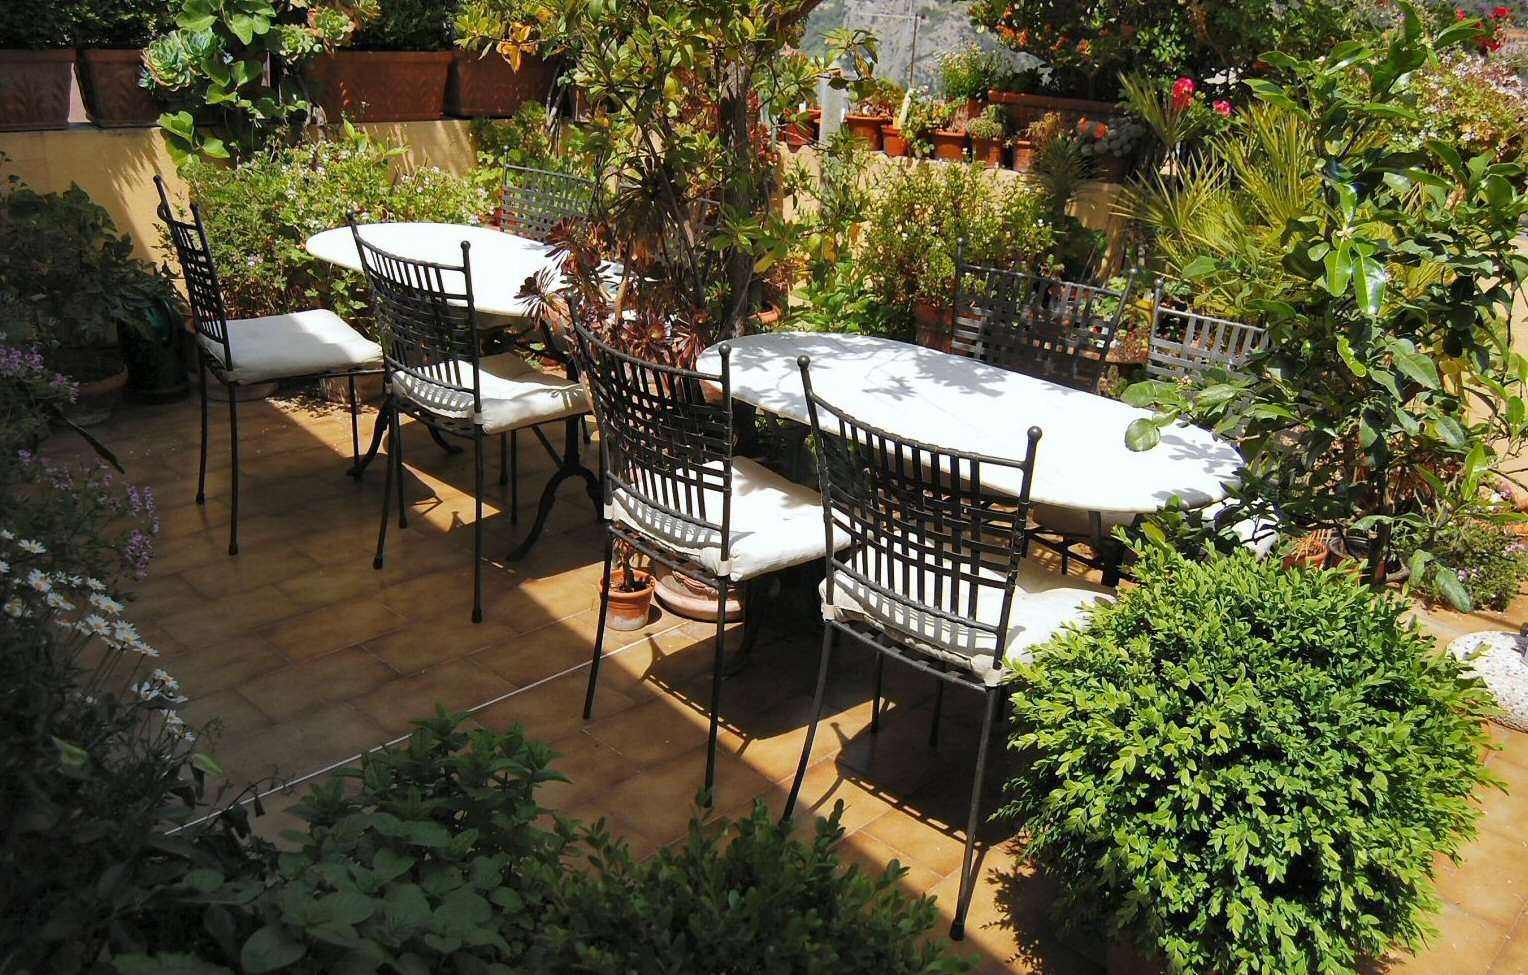 The beautiful terrace is a botanical paradise